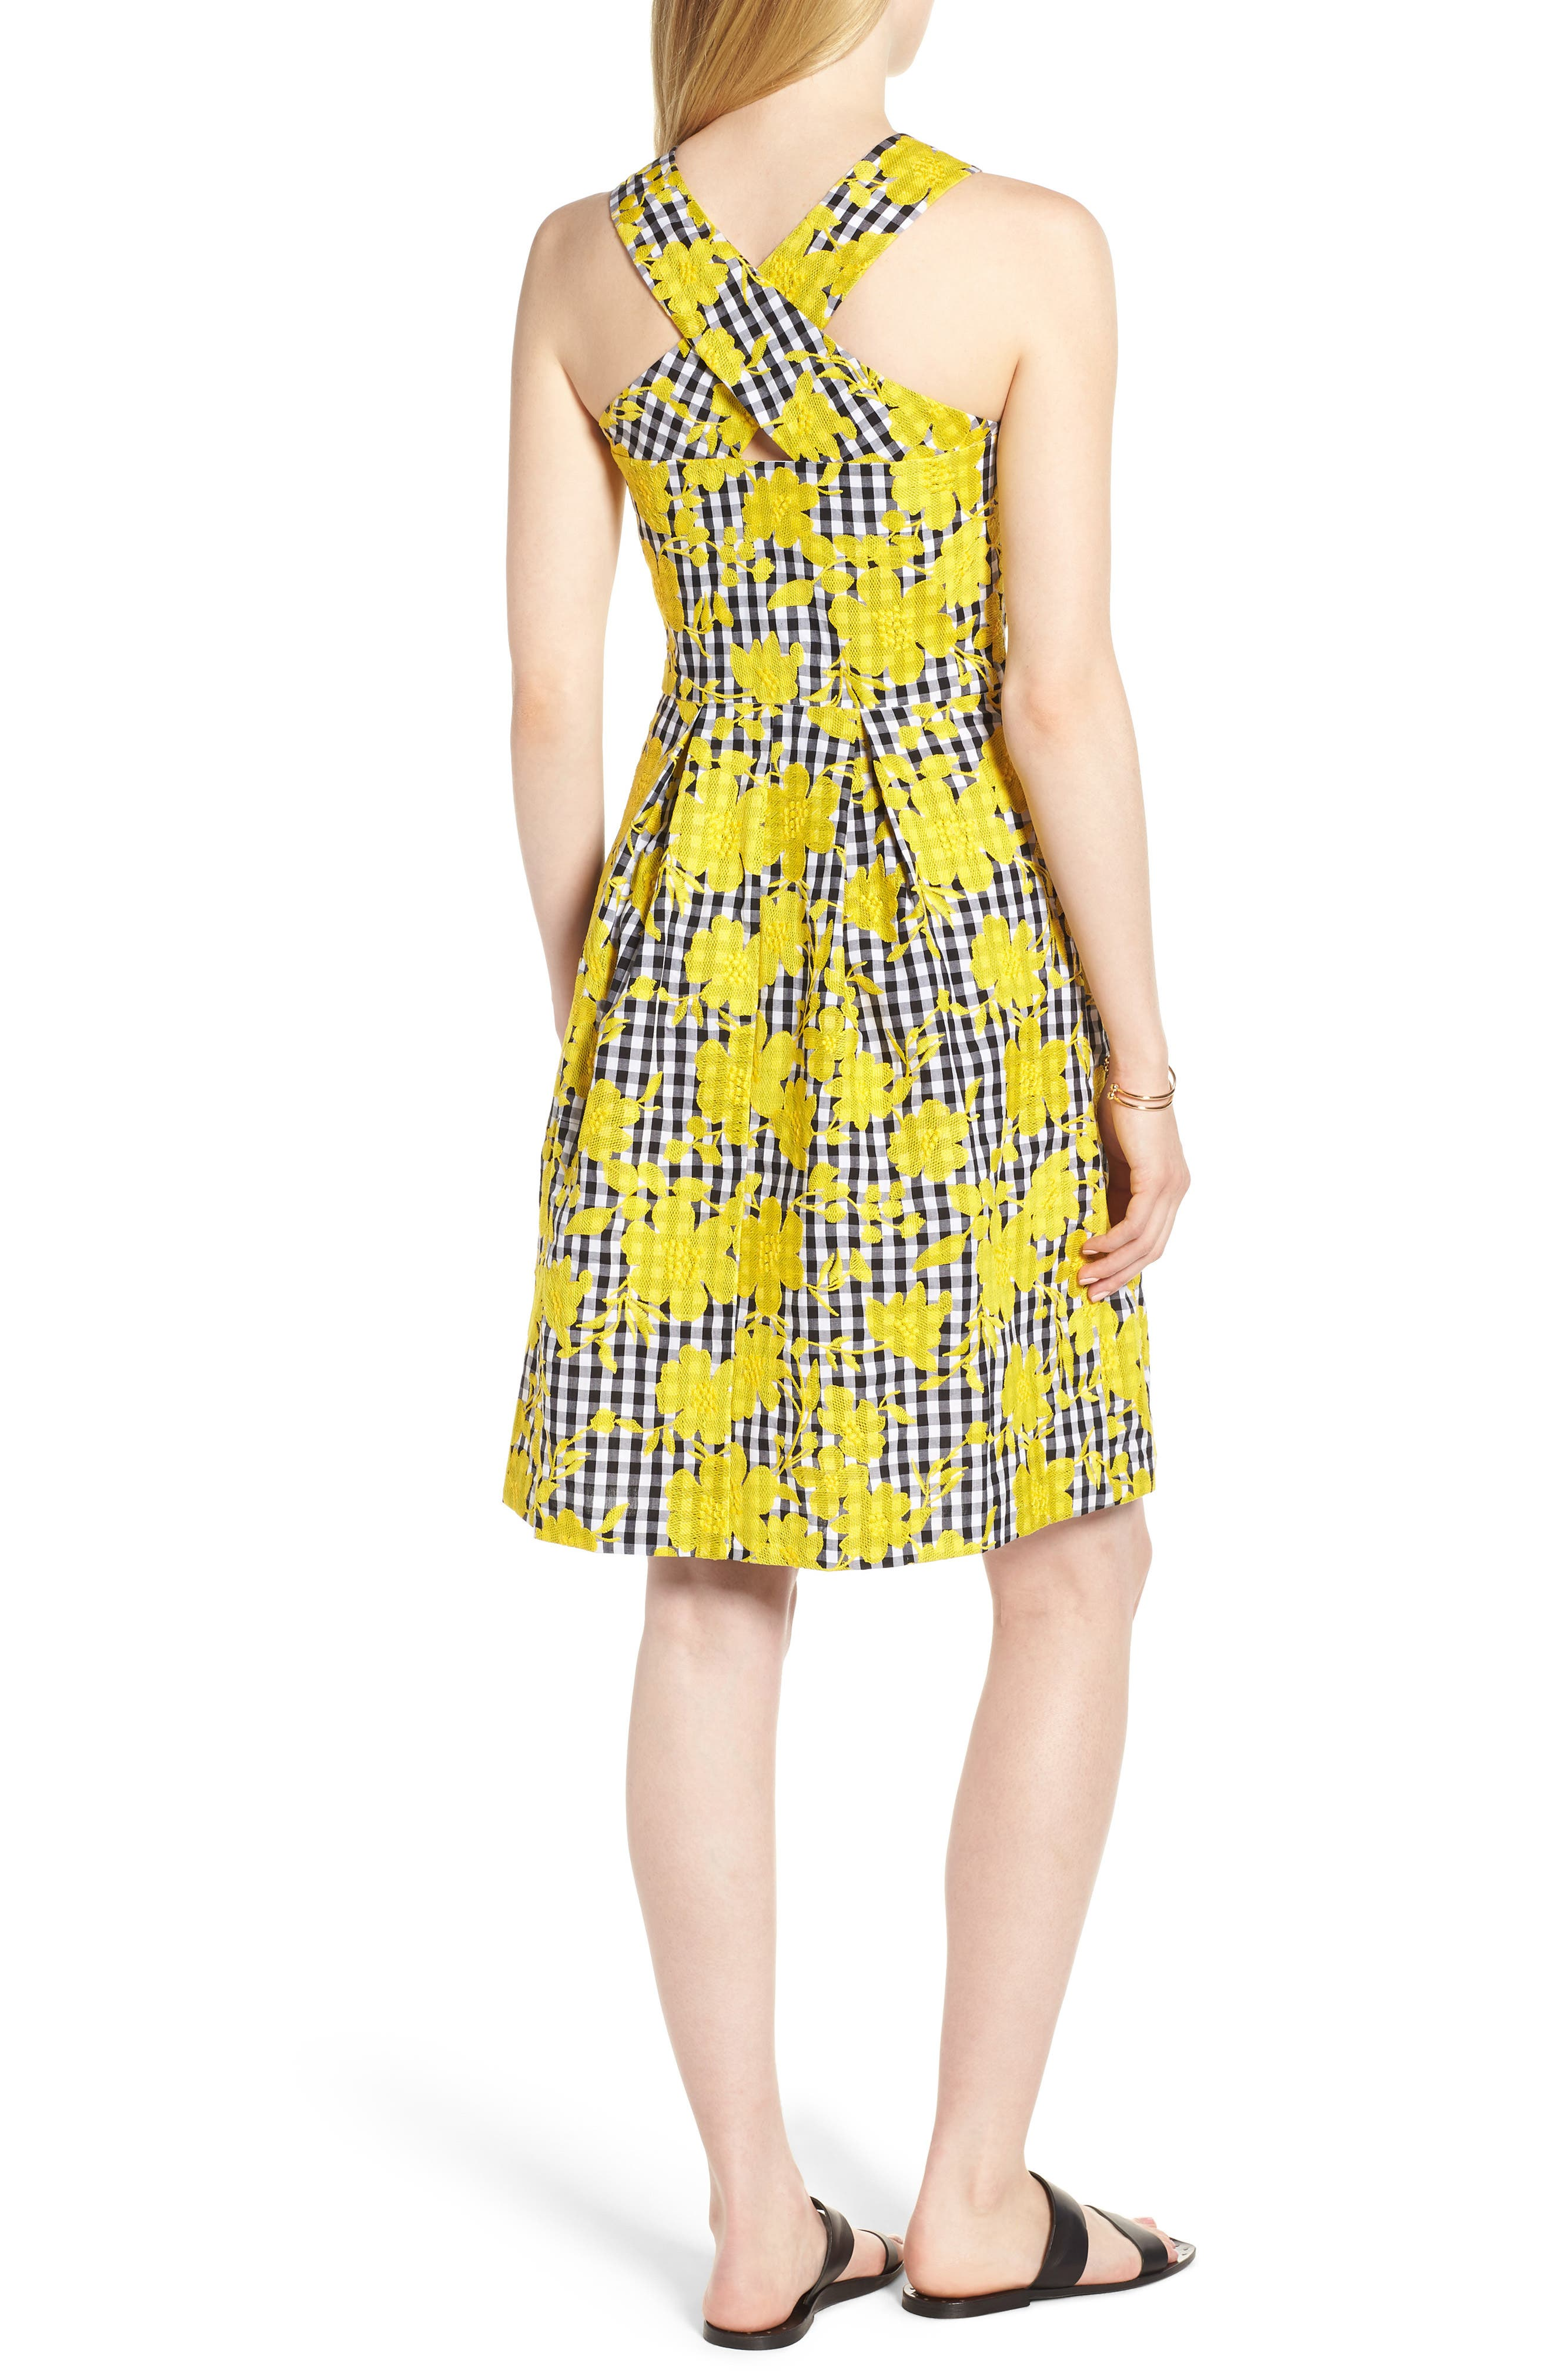 Embroidered Cross Back Cotton Gingham Dress,                             Alternate thumbnail 2, color,                             Yellow- Black Gingham